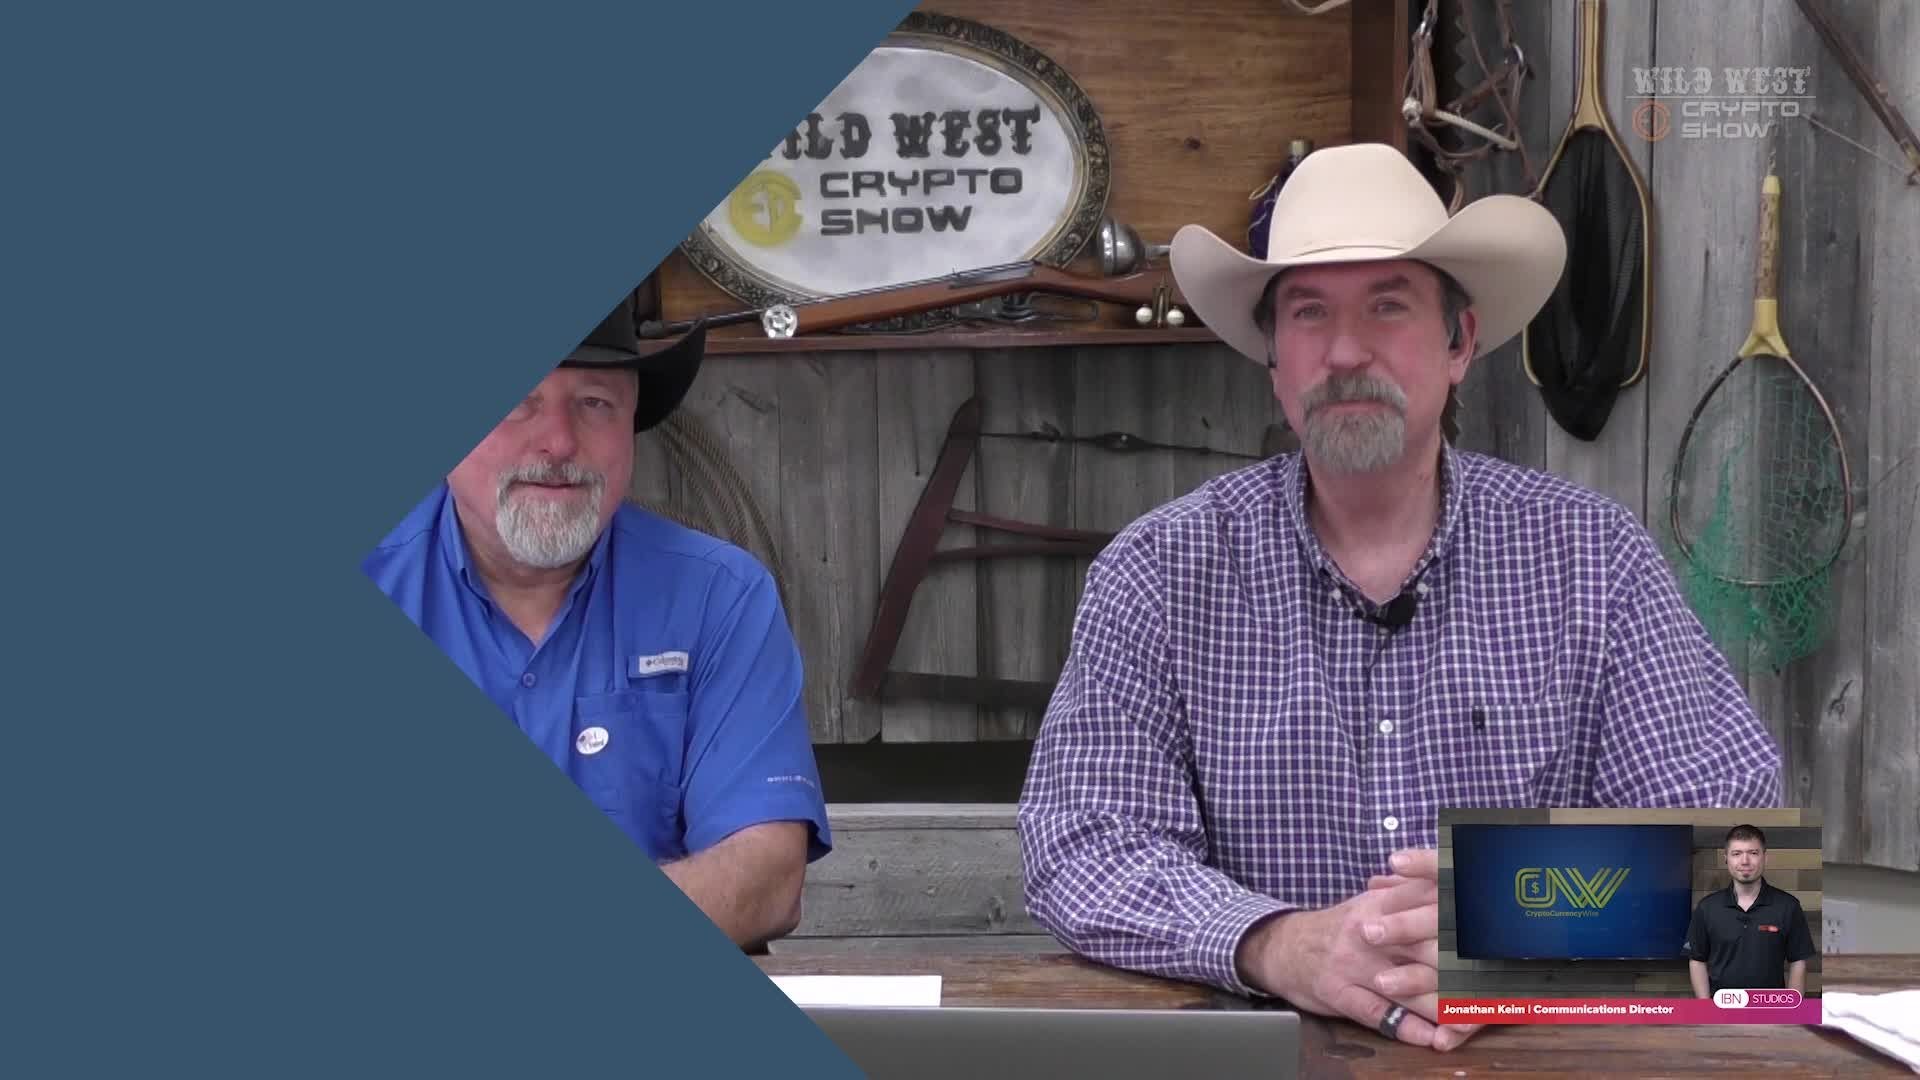 CryptoCurrencyWire Videos-The Wild West Crypto Show Continues to Celebrate Digital Currency Adoption Trends   CryptoCurrencyWire on The Wild West Crypto Show   Episode 133